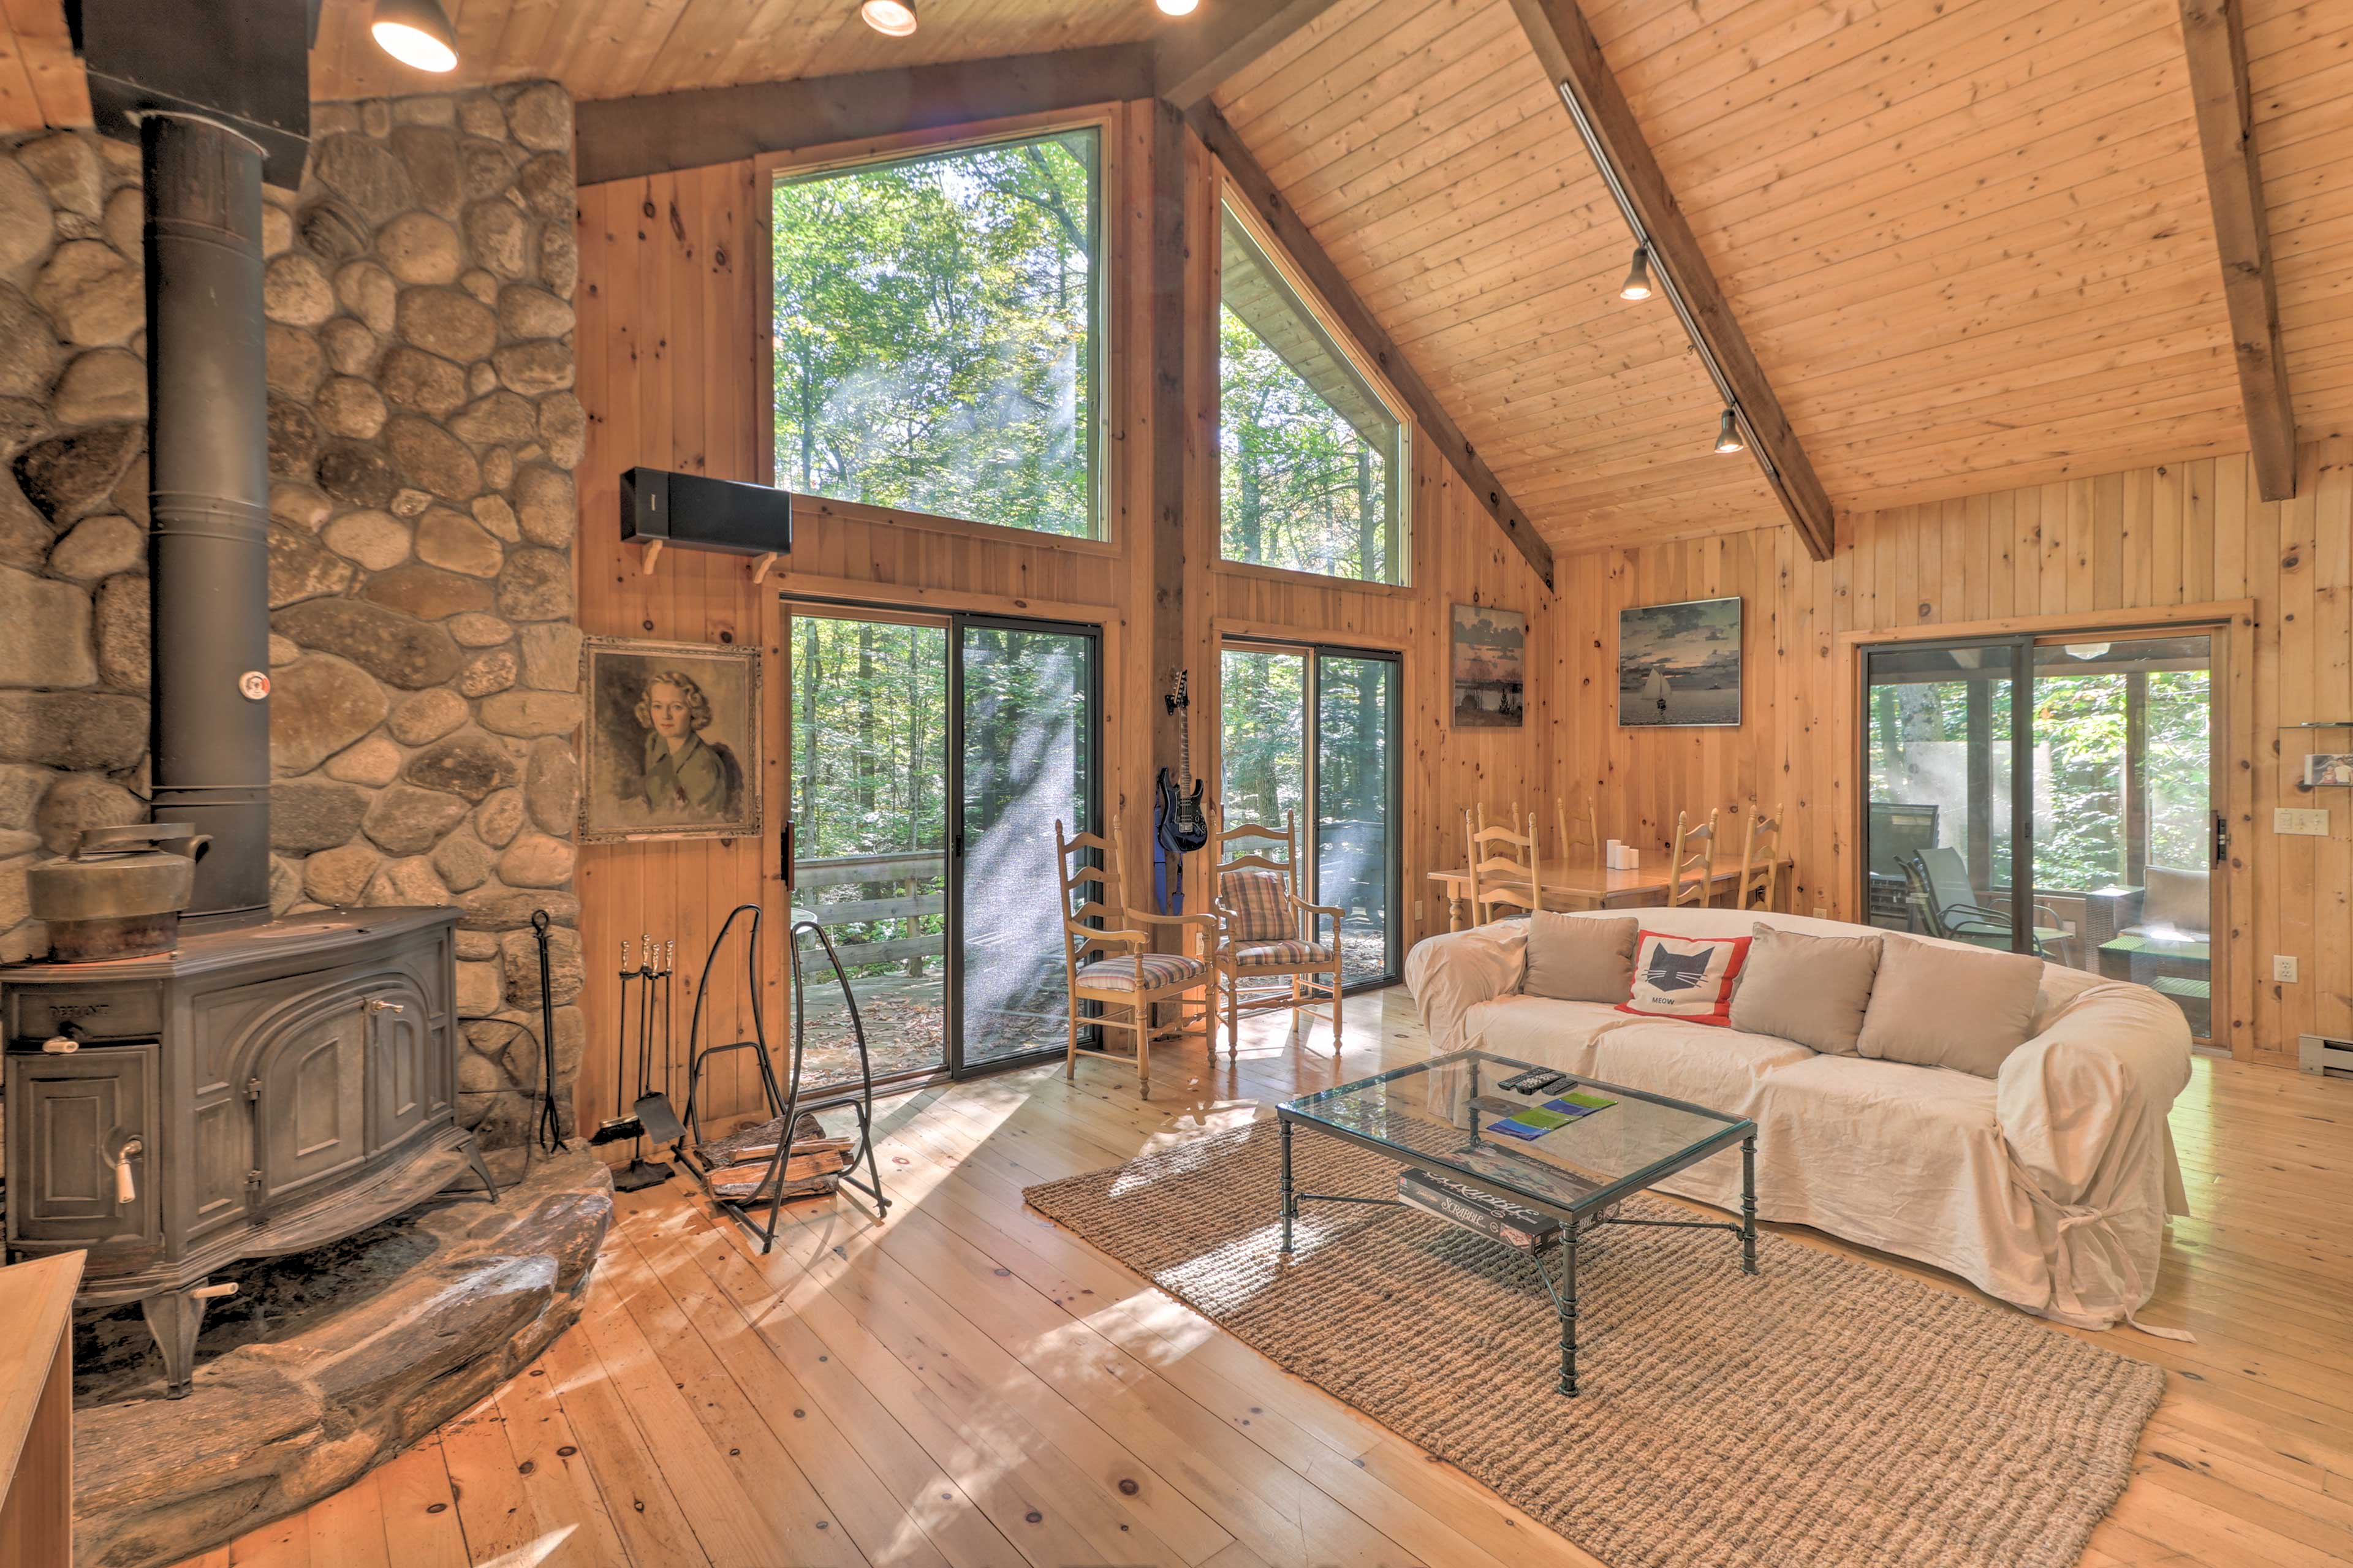 Cozy up inside this vacation rental cabin!